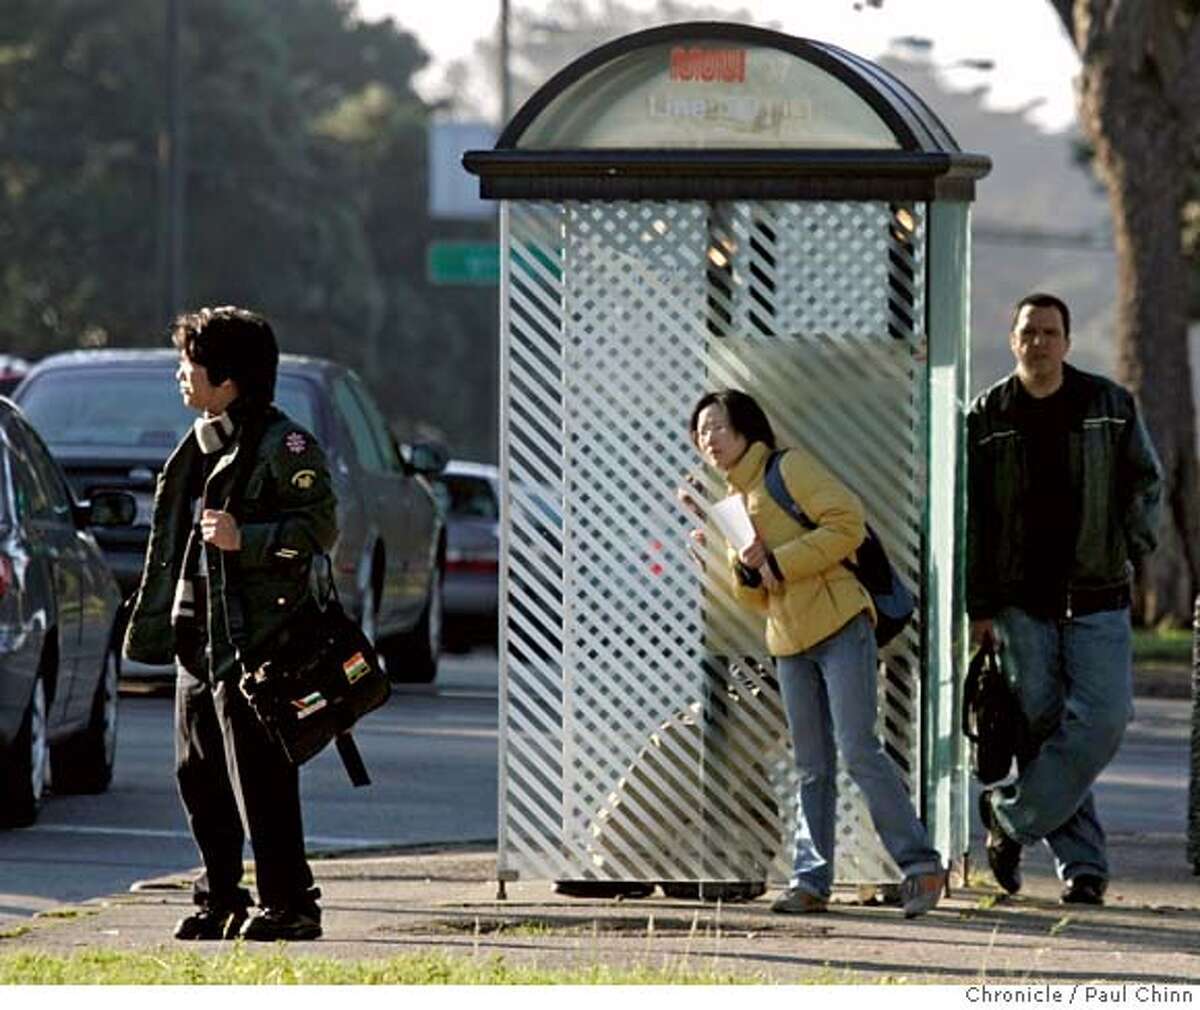 Passengers wait for a 29-Sunset Muni bus to show up at Sunset Boulevard and Taraval in San Francisco, Calif. on Wednesday, February 14, 2007. Statistics show that the 29-Sunset line has the worst on-time performance record running at 59 percent compared to the 1-California line which is on-time 82 percent of the time. PAUL CHINN/The Chronicle MANDATORY CREDIT FOR PHOTOGRAPHER AND S.F. CHRONICLE/NO SALES - MAGS OUT